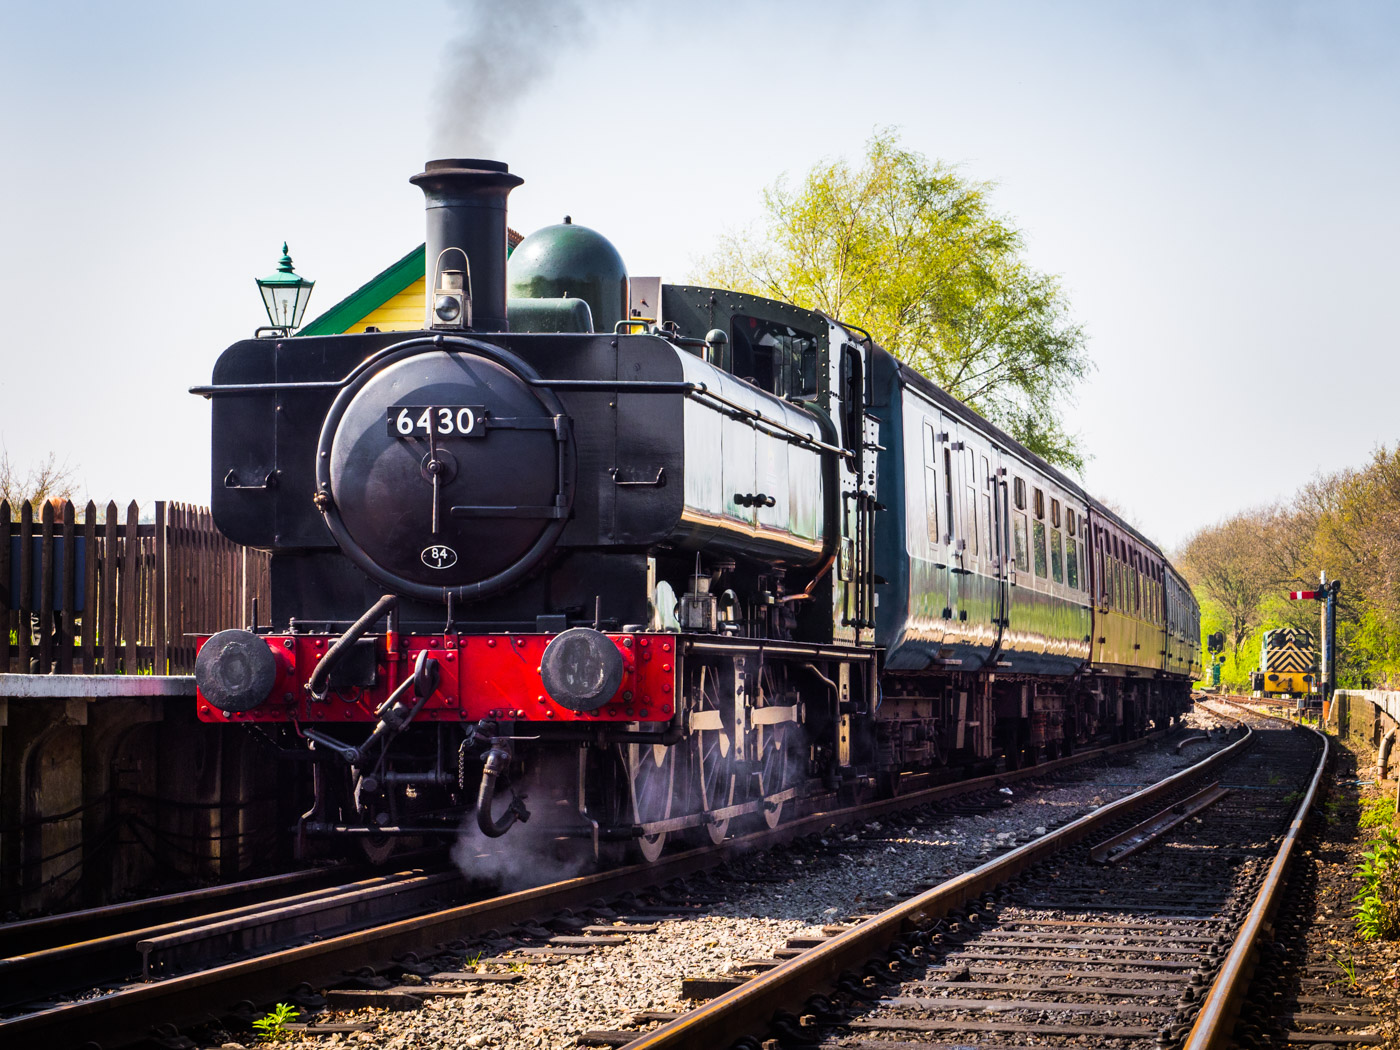 Steam train, Epping and Ongar railway.